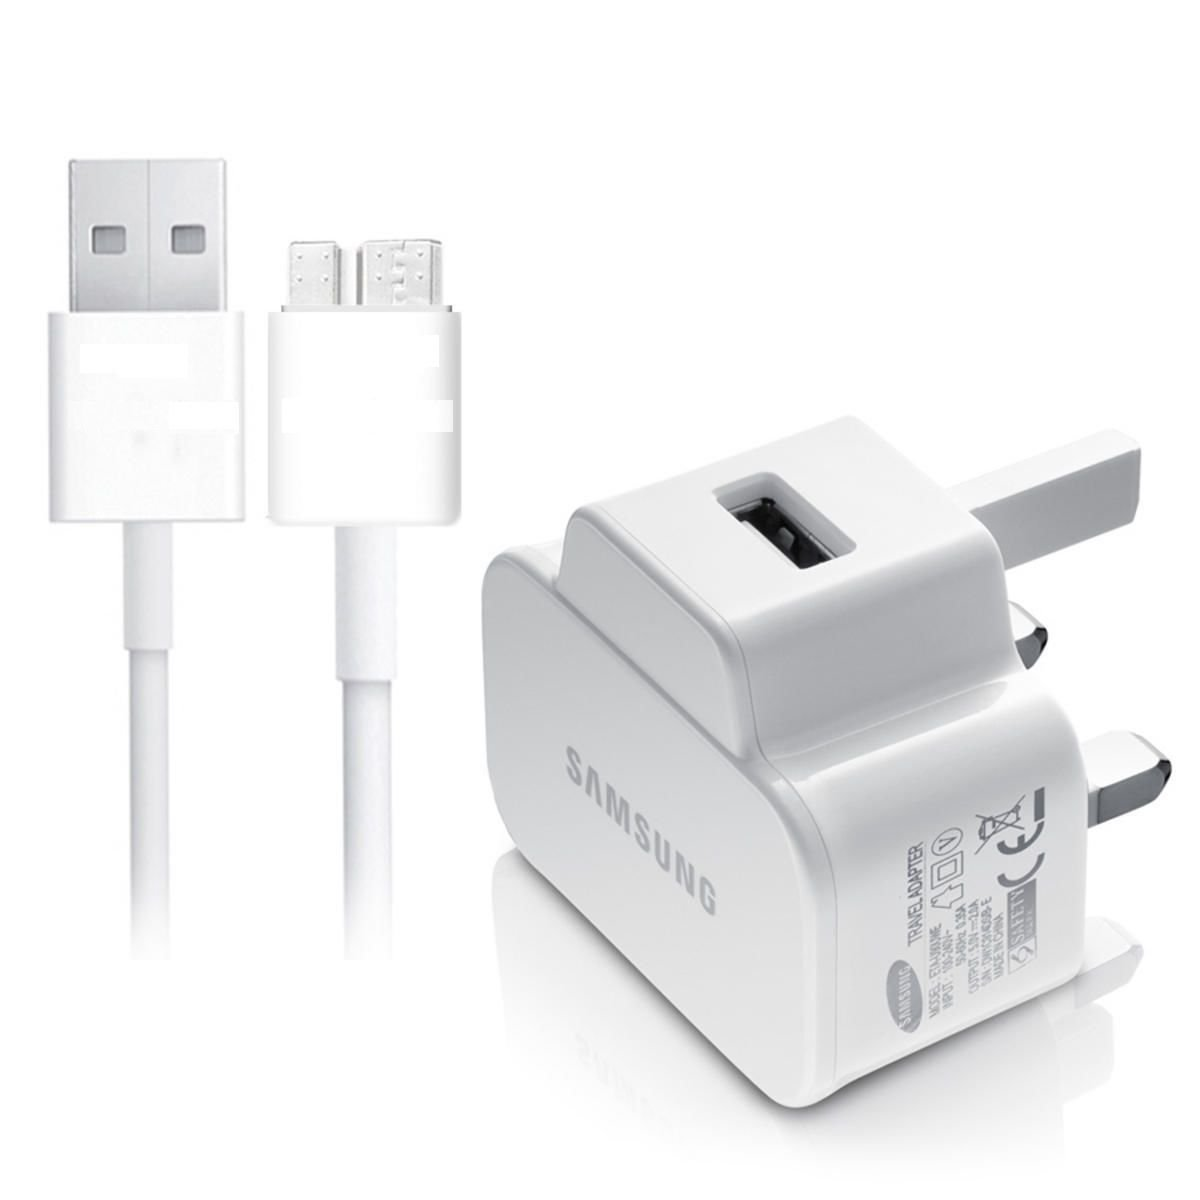 REPLACEMENT SAMSUNG GALAXY NOTE 3, S5 WALL CHARGERS MAINS+ 3 METER CABLE UK